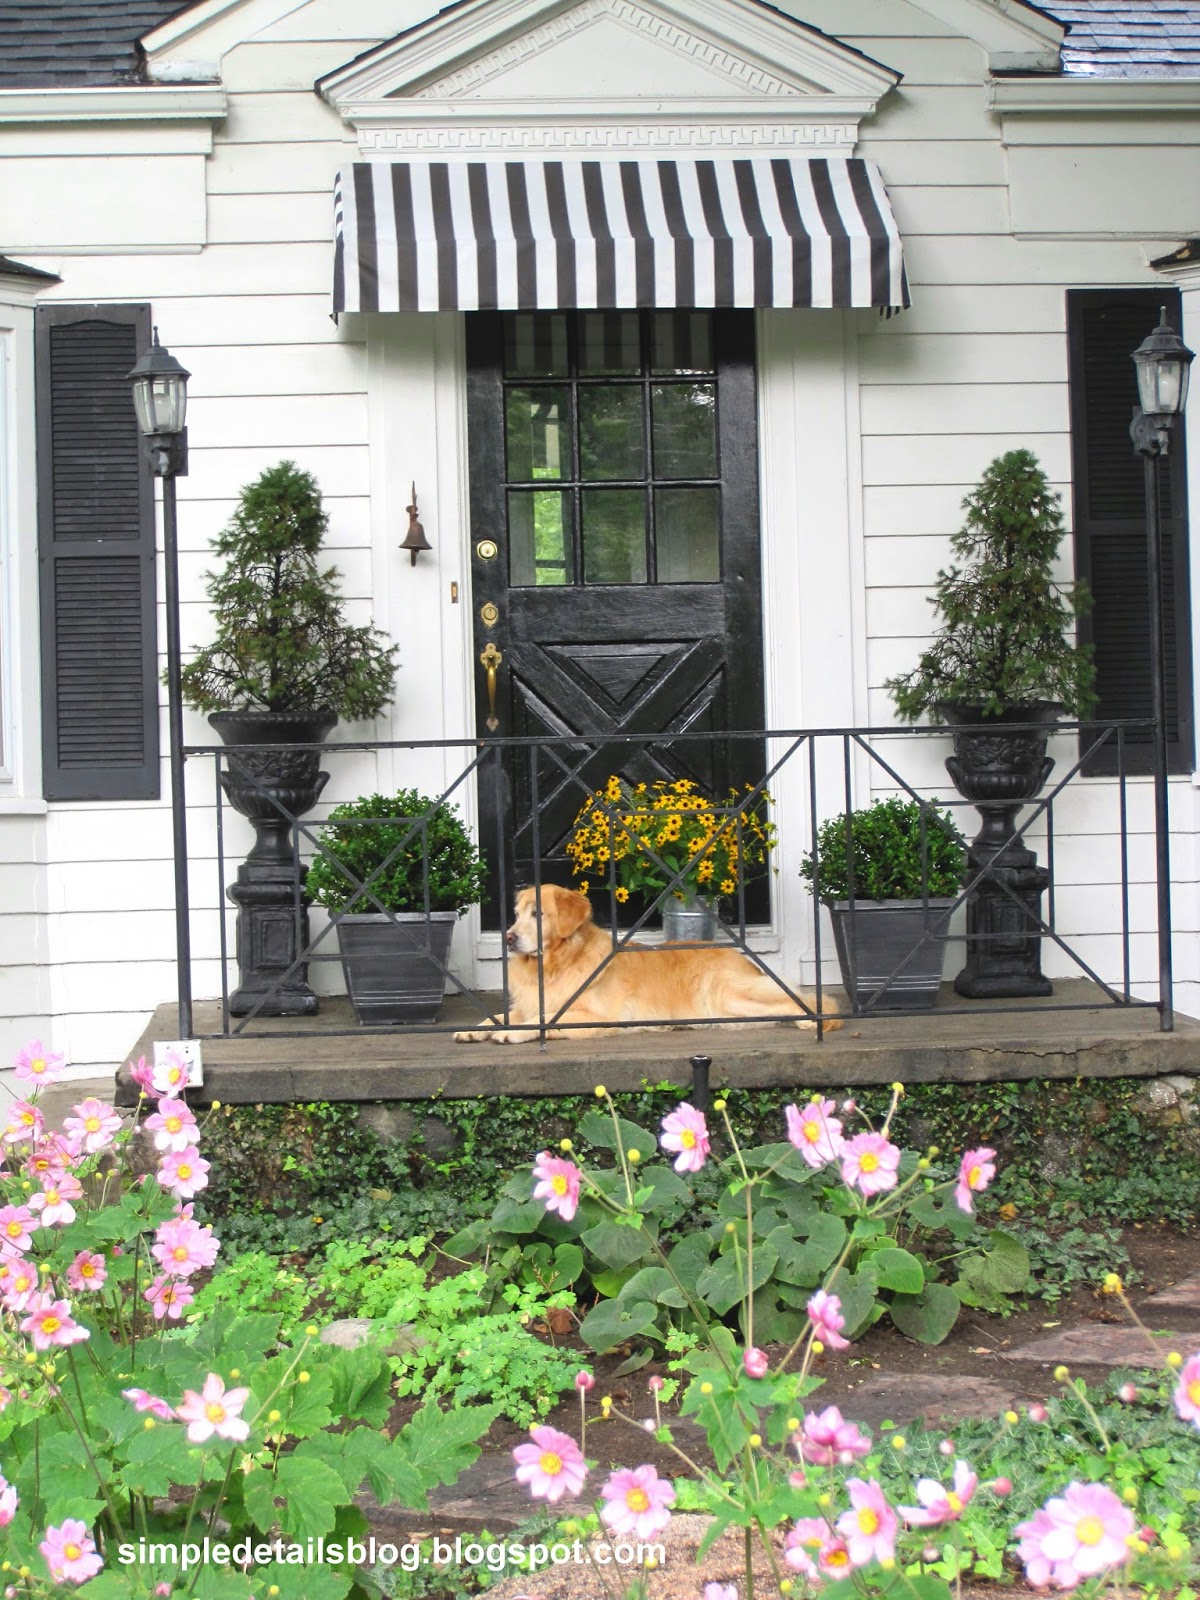 Diy Outdoor Awning Outdoor Awnings Deck Awnings Diy Outdoor Awning - Diy awning tutorial